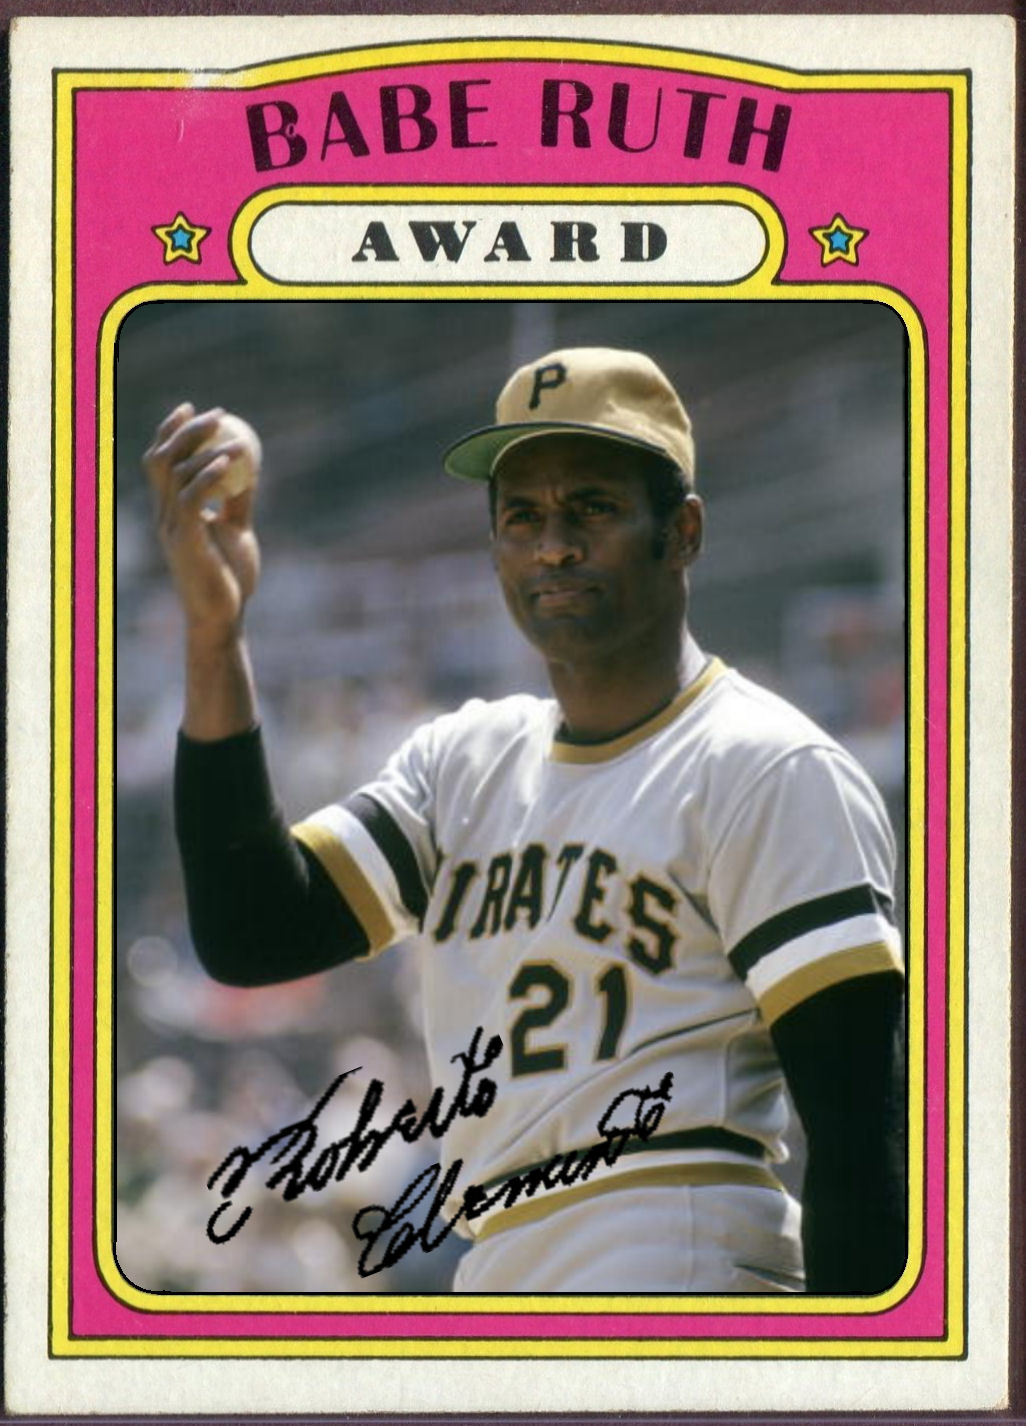 Cards That Never Were 1972 Topps Babe Ruth Award Roberto